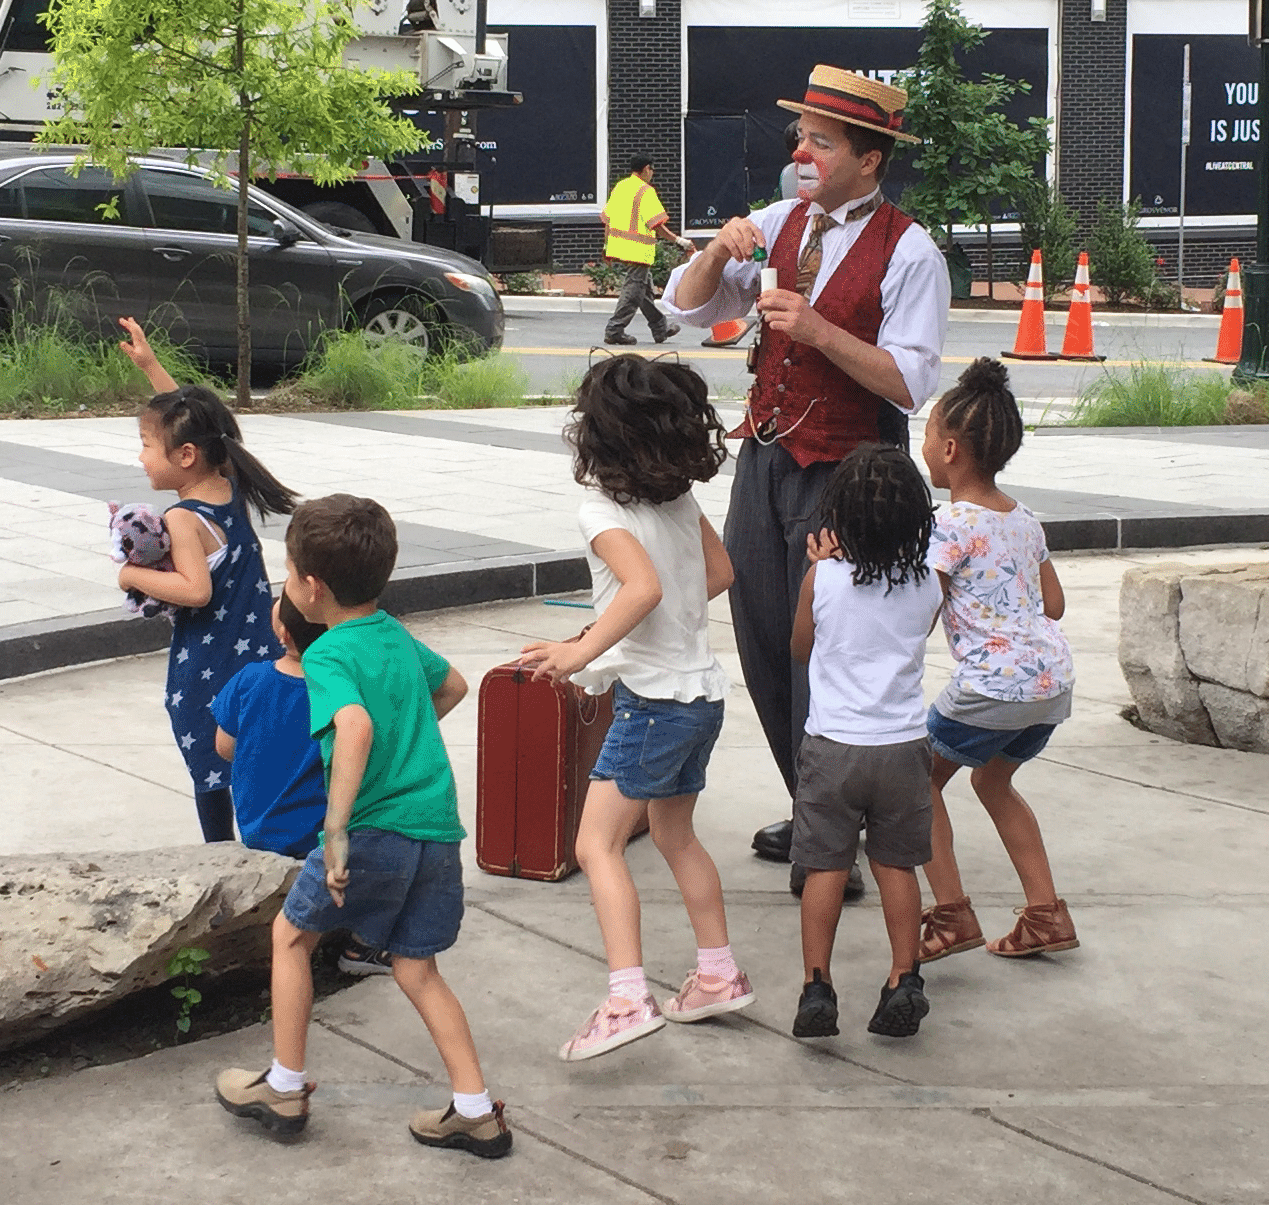 Street Entertainer Matthew Pauli Kicks Off Summer Reading